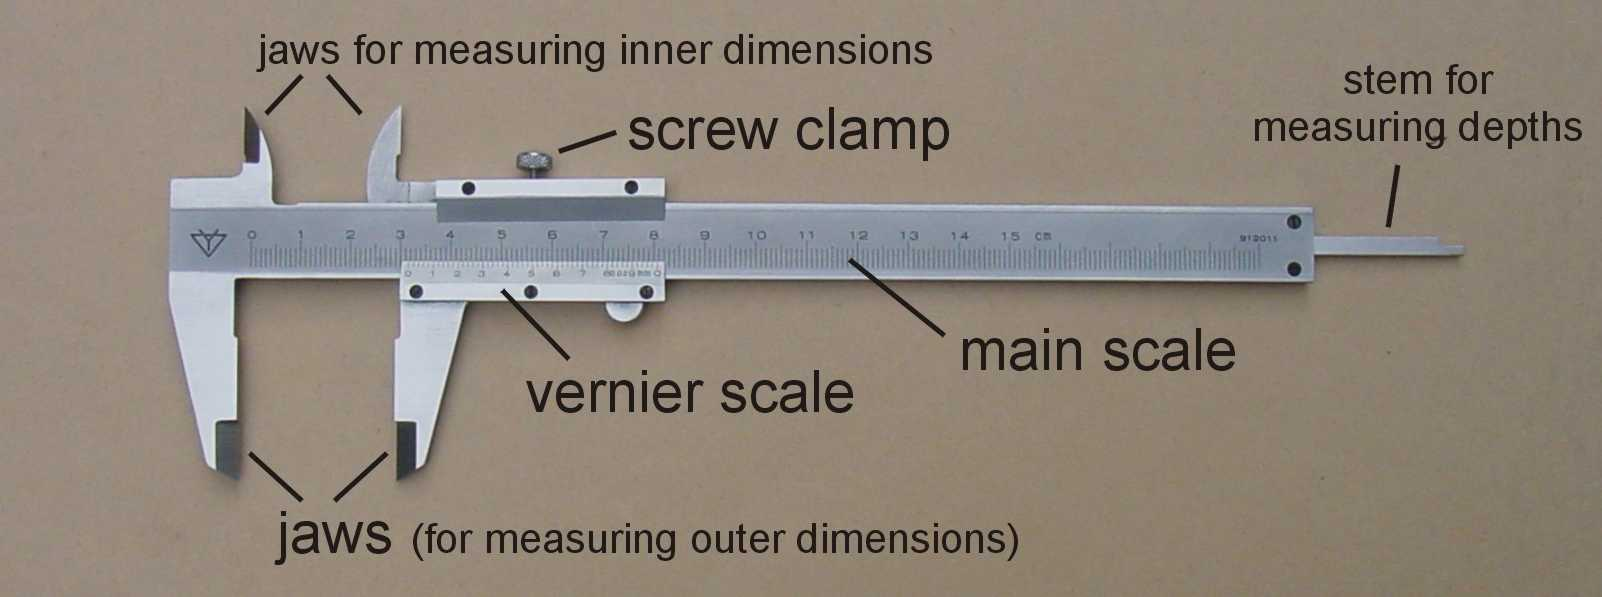 Stupendous How To Read A Vernier Caliper Mini Physics Learn Physics Online Wiring Cloud Ittabisraaidewilluminateatxorg